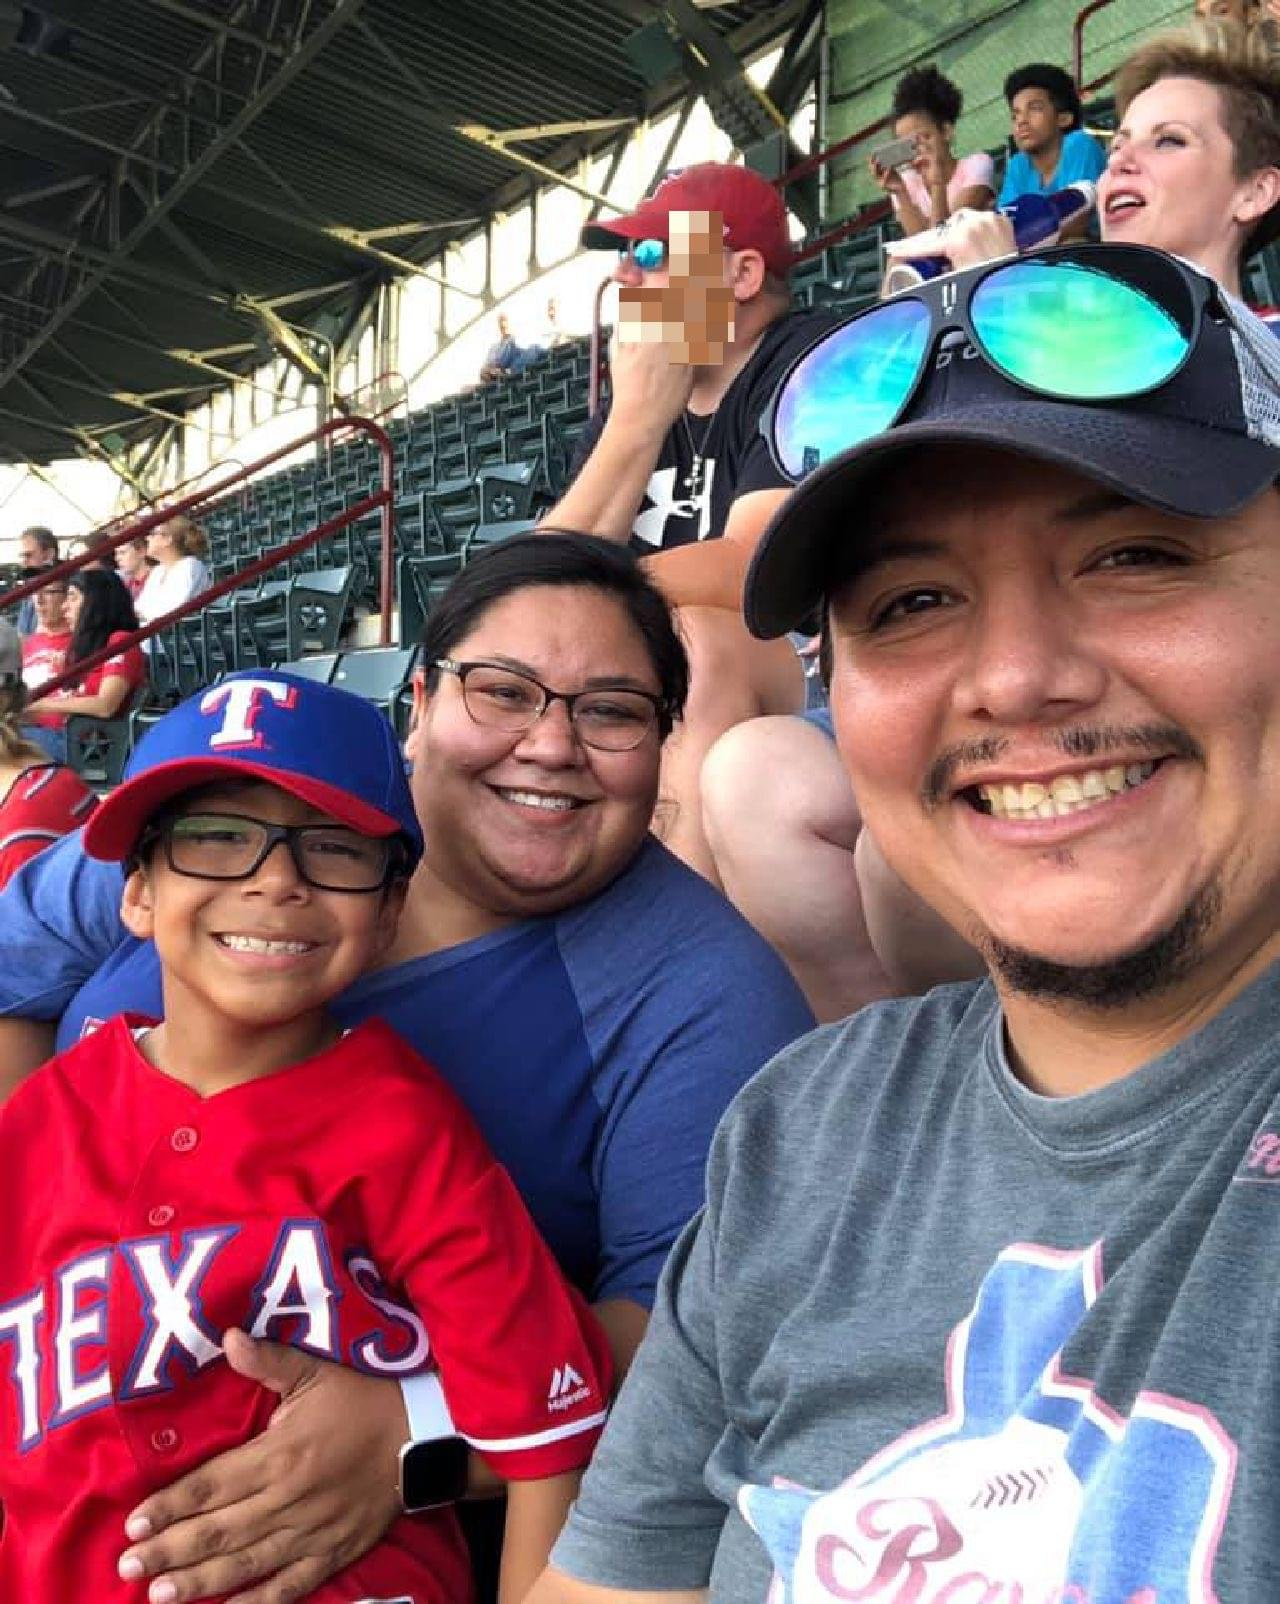 Rangers Fan Claims Racial Harassment in Stands